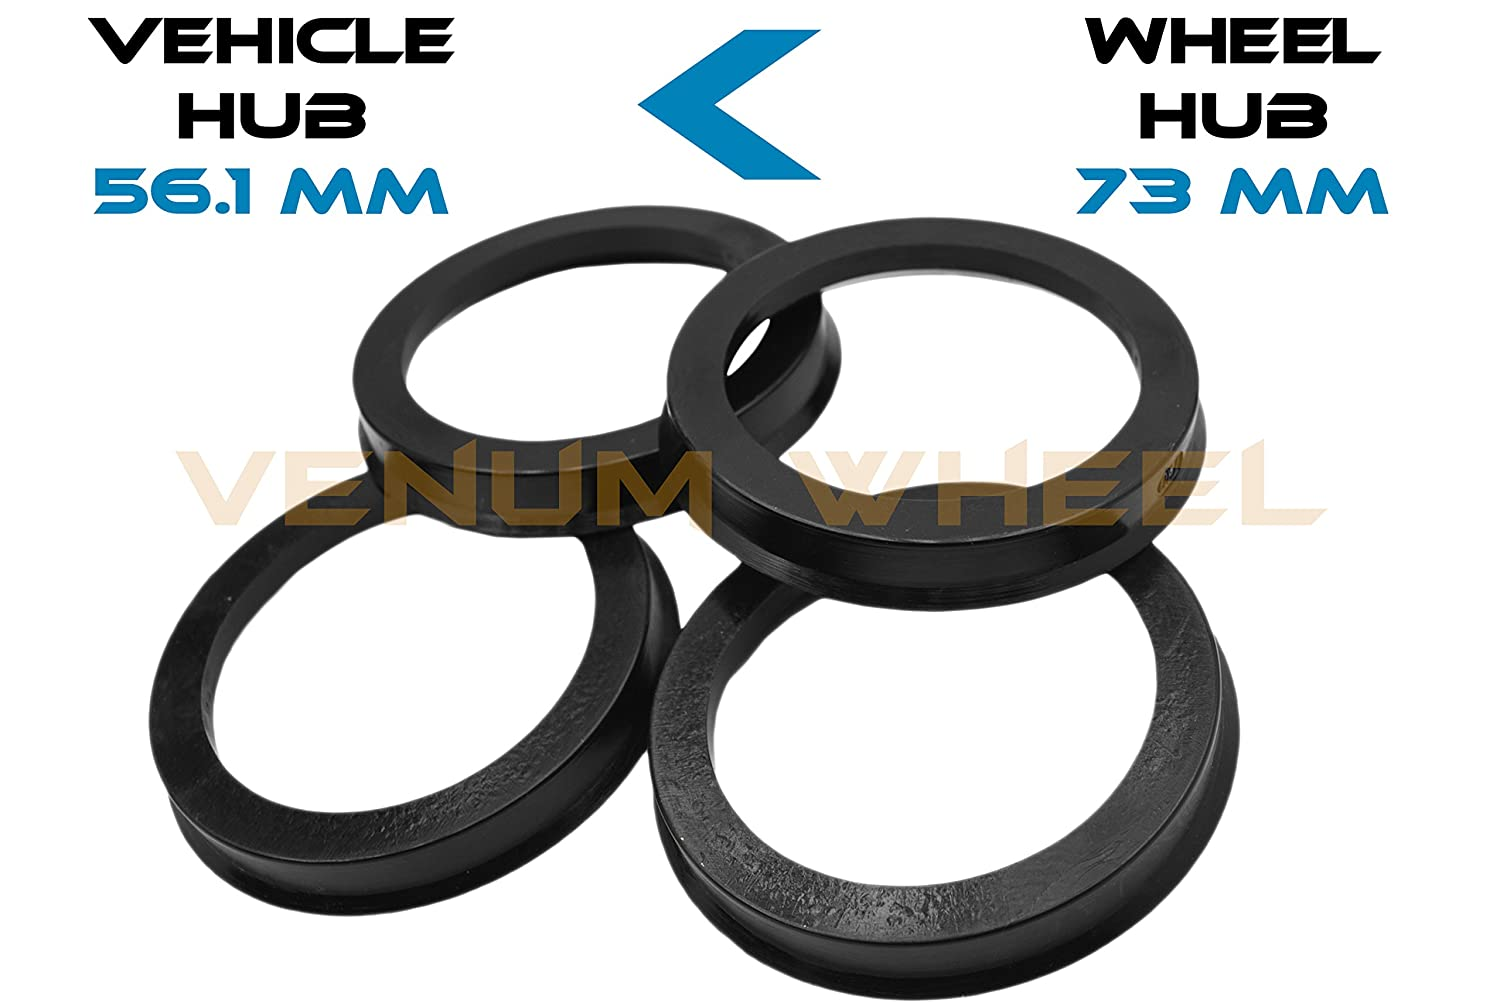 4 Hub Centric Rings 56.1 ID To 73.00 OD Black Polycarbonate Material ( Vehicle 56.1mm to Wheel 73.00) VENUM WHEEL ACCESSORIES